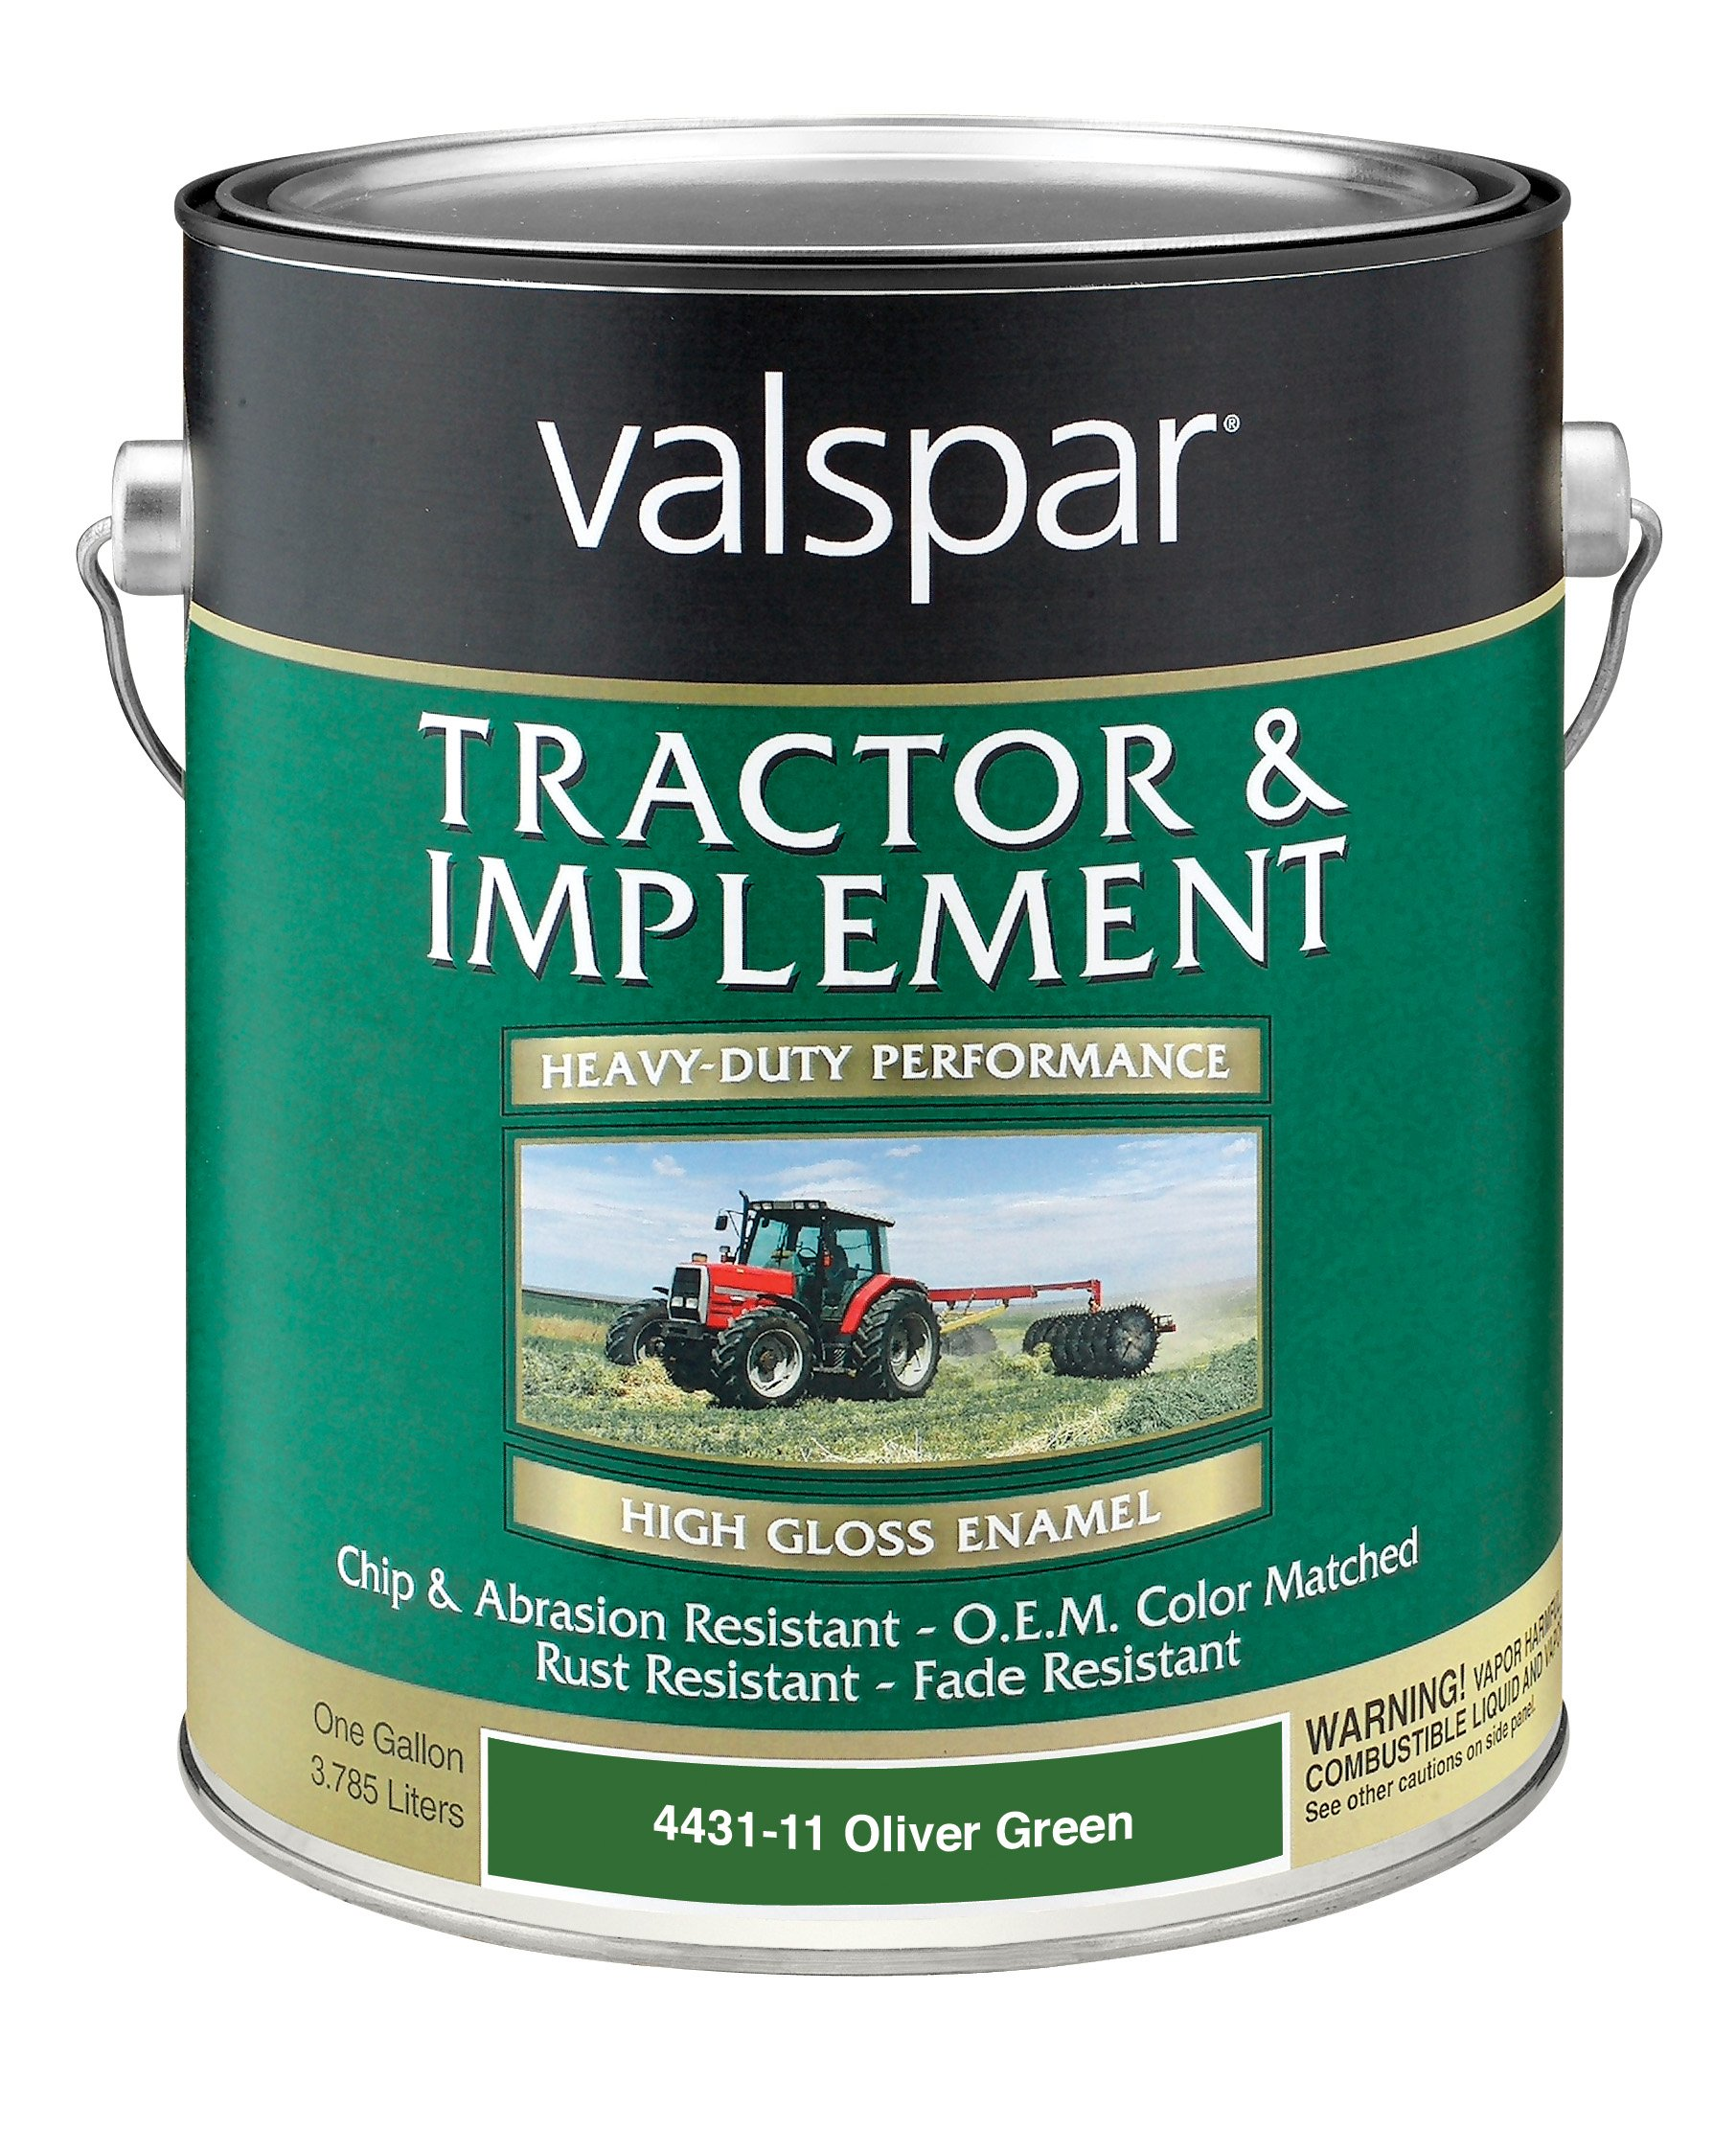 Valspar 4431-11 Oliver Green Tractor and Implement Paint - 1 Gallon